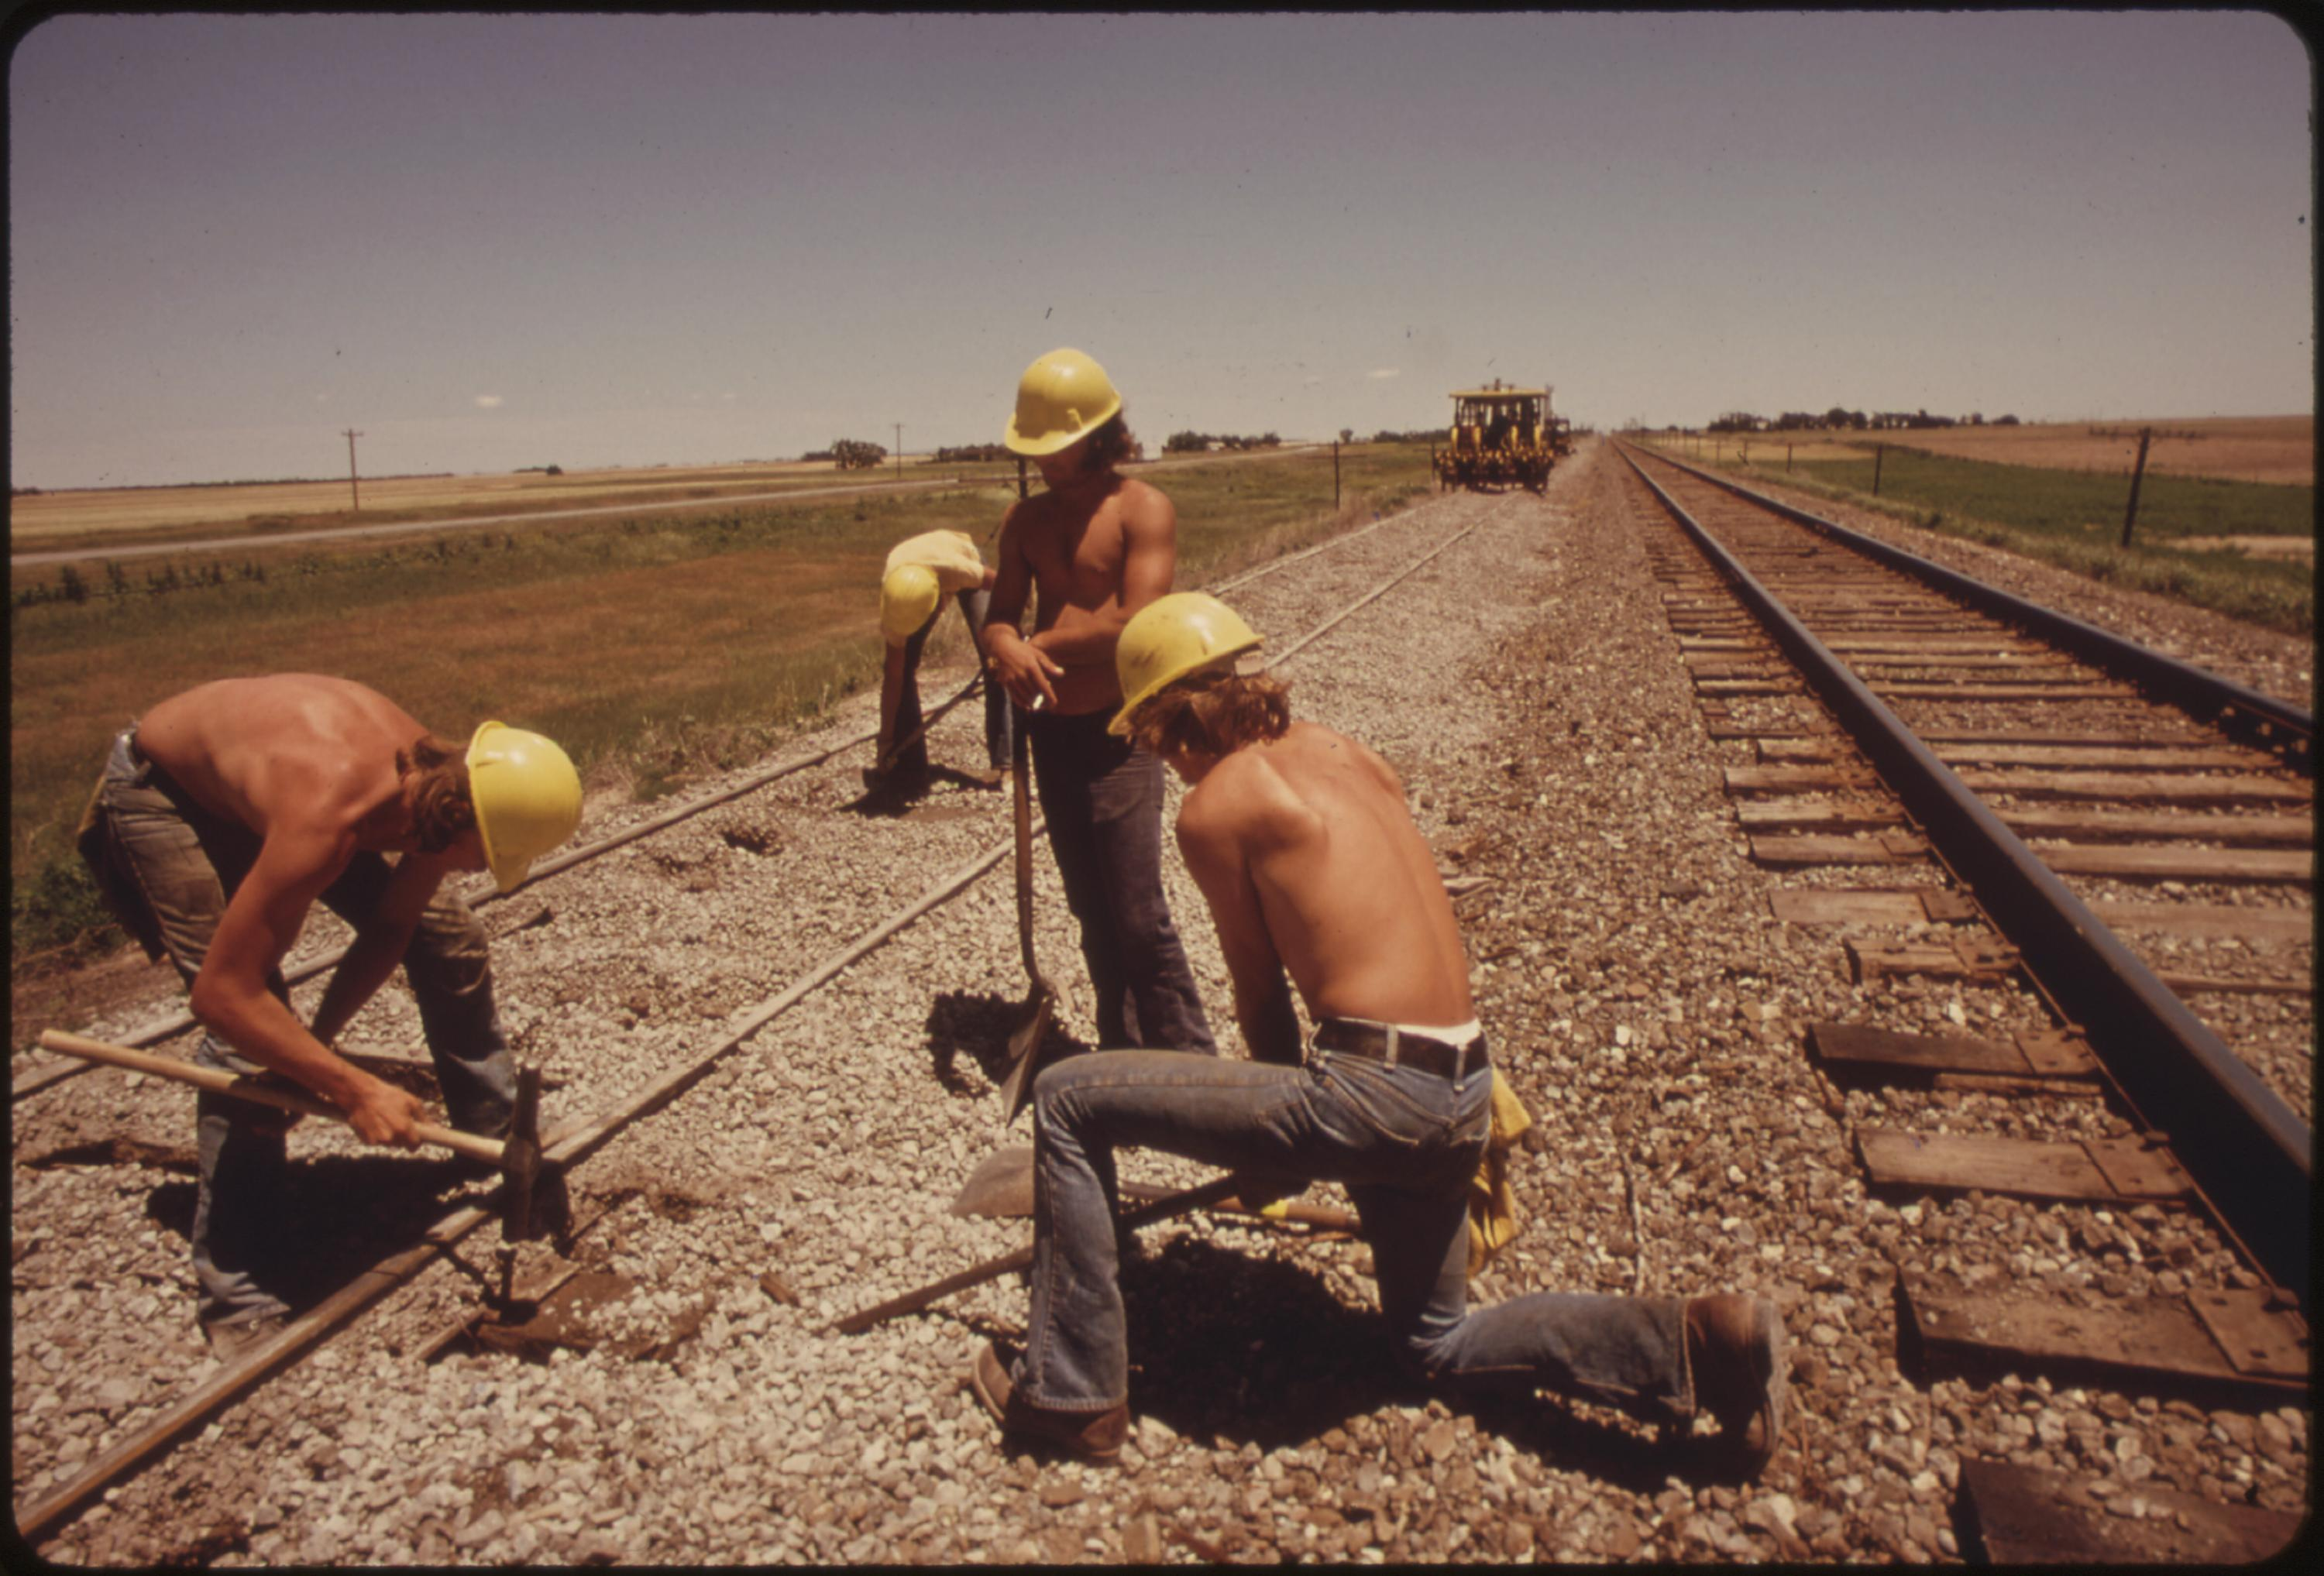 Railroad work crew improves the tracks and bed of the Atchison, Topeka and Santa Fe railroad near Bellefont, Kansas, June 1974